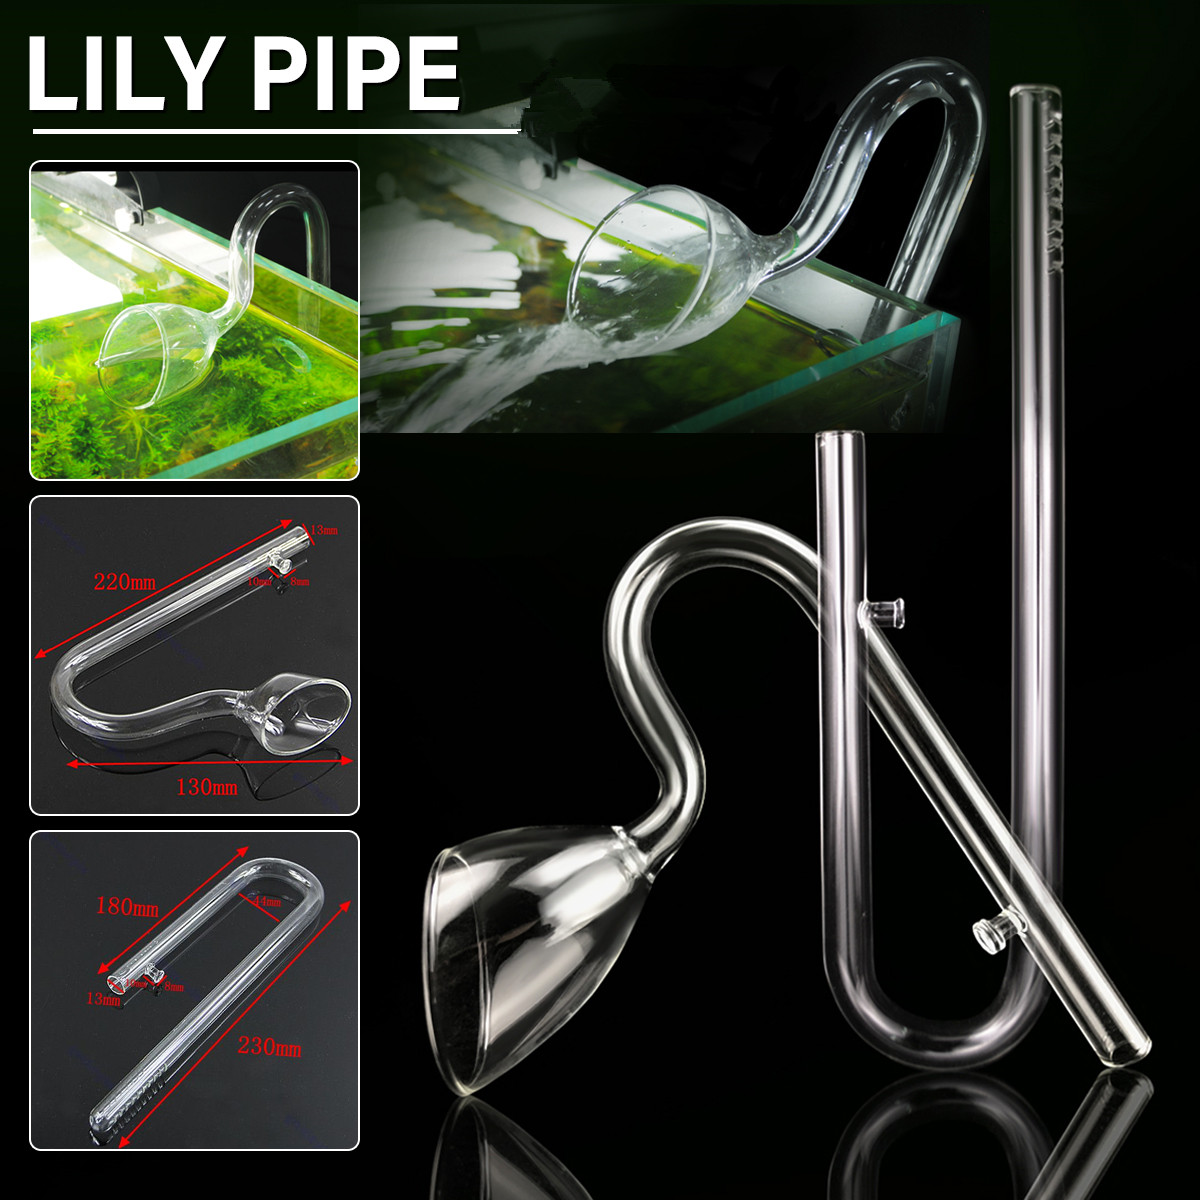 Aquarium Planted Glass Outflow Inflow Lily Pipe 13mm Tube With Suction Cup